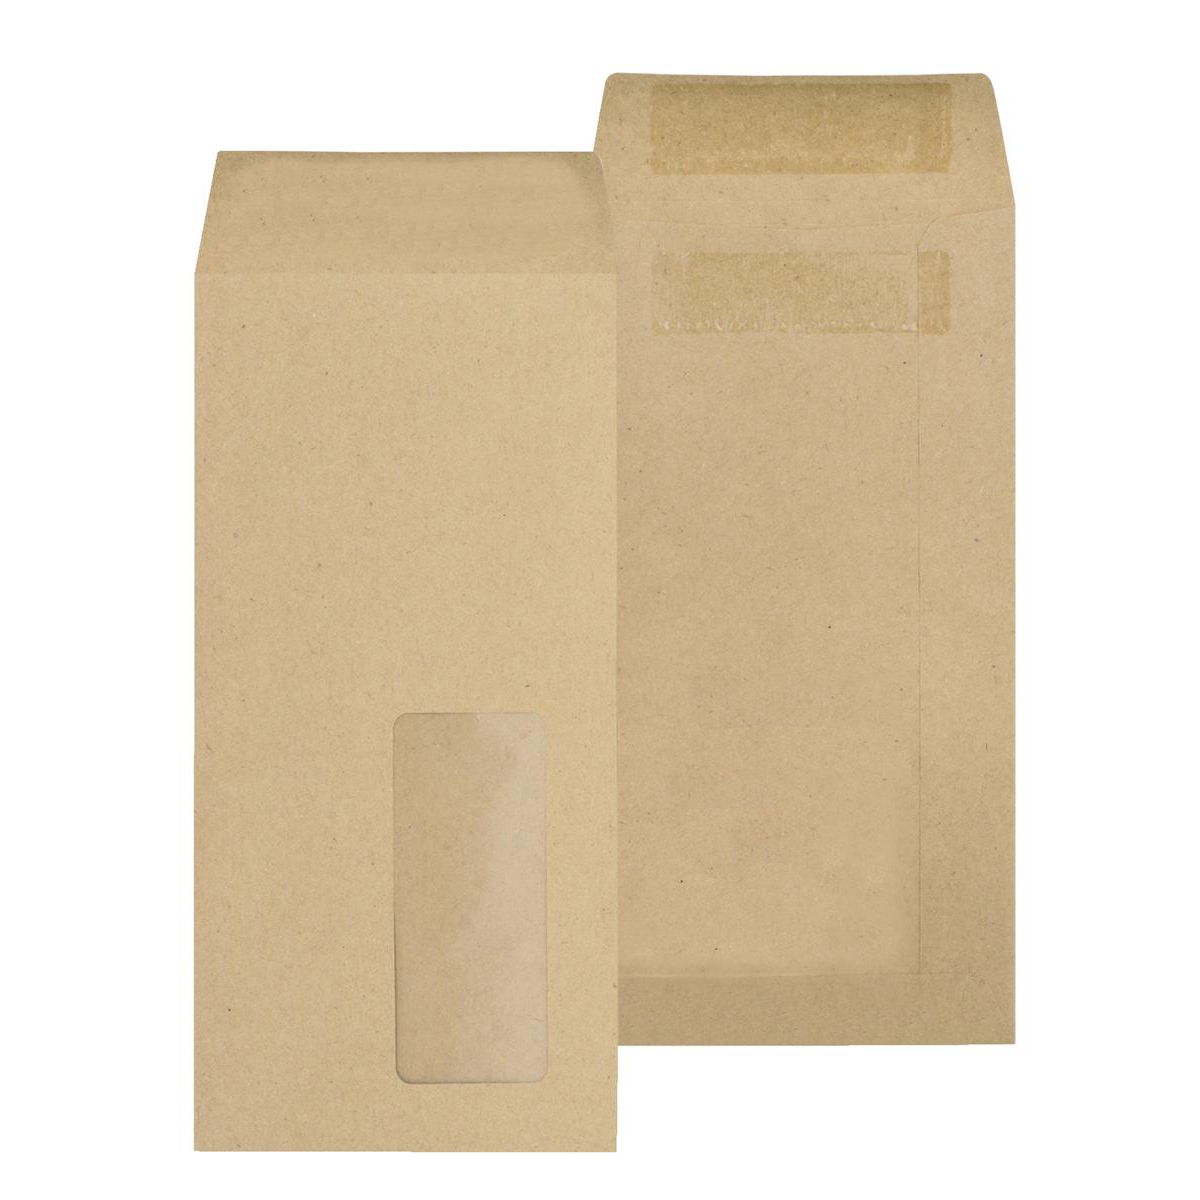 New Guardian Envelopes Pocket Self Seal Window 80gsm DL 220x110mm Manilla Ref  [Pack 1000]